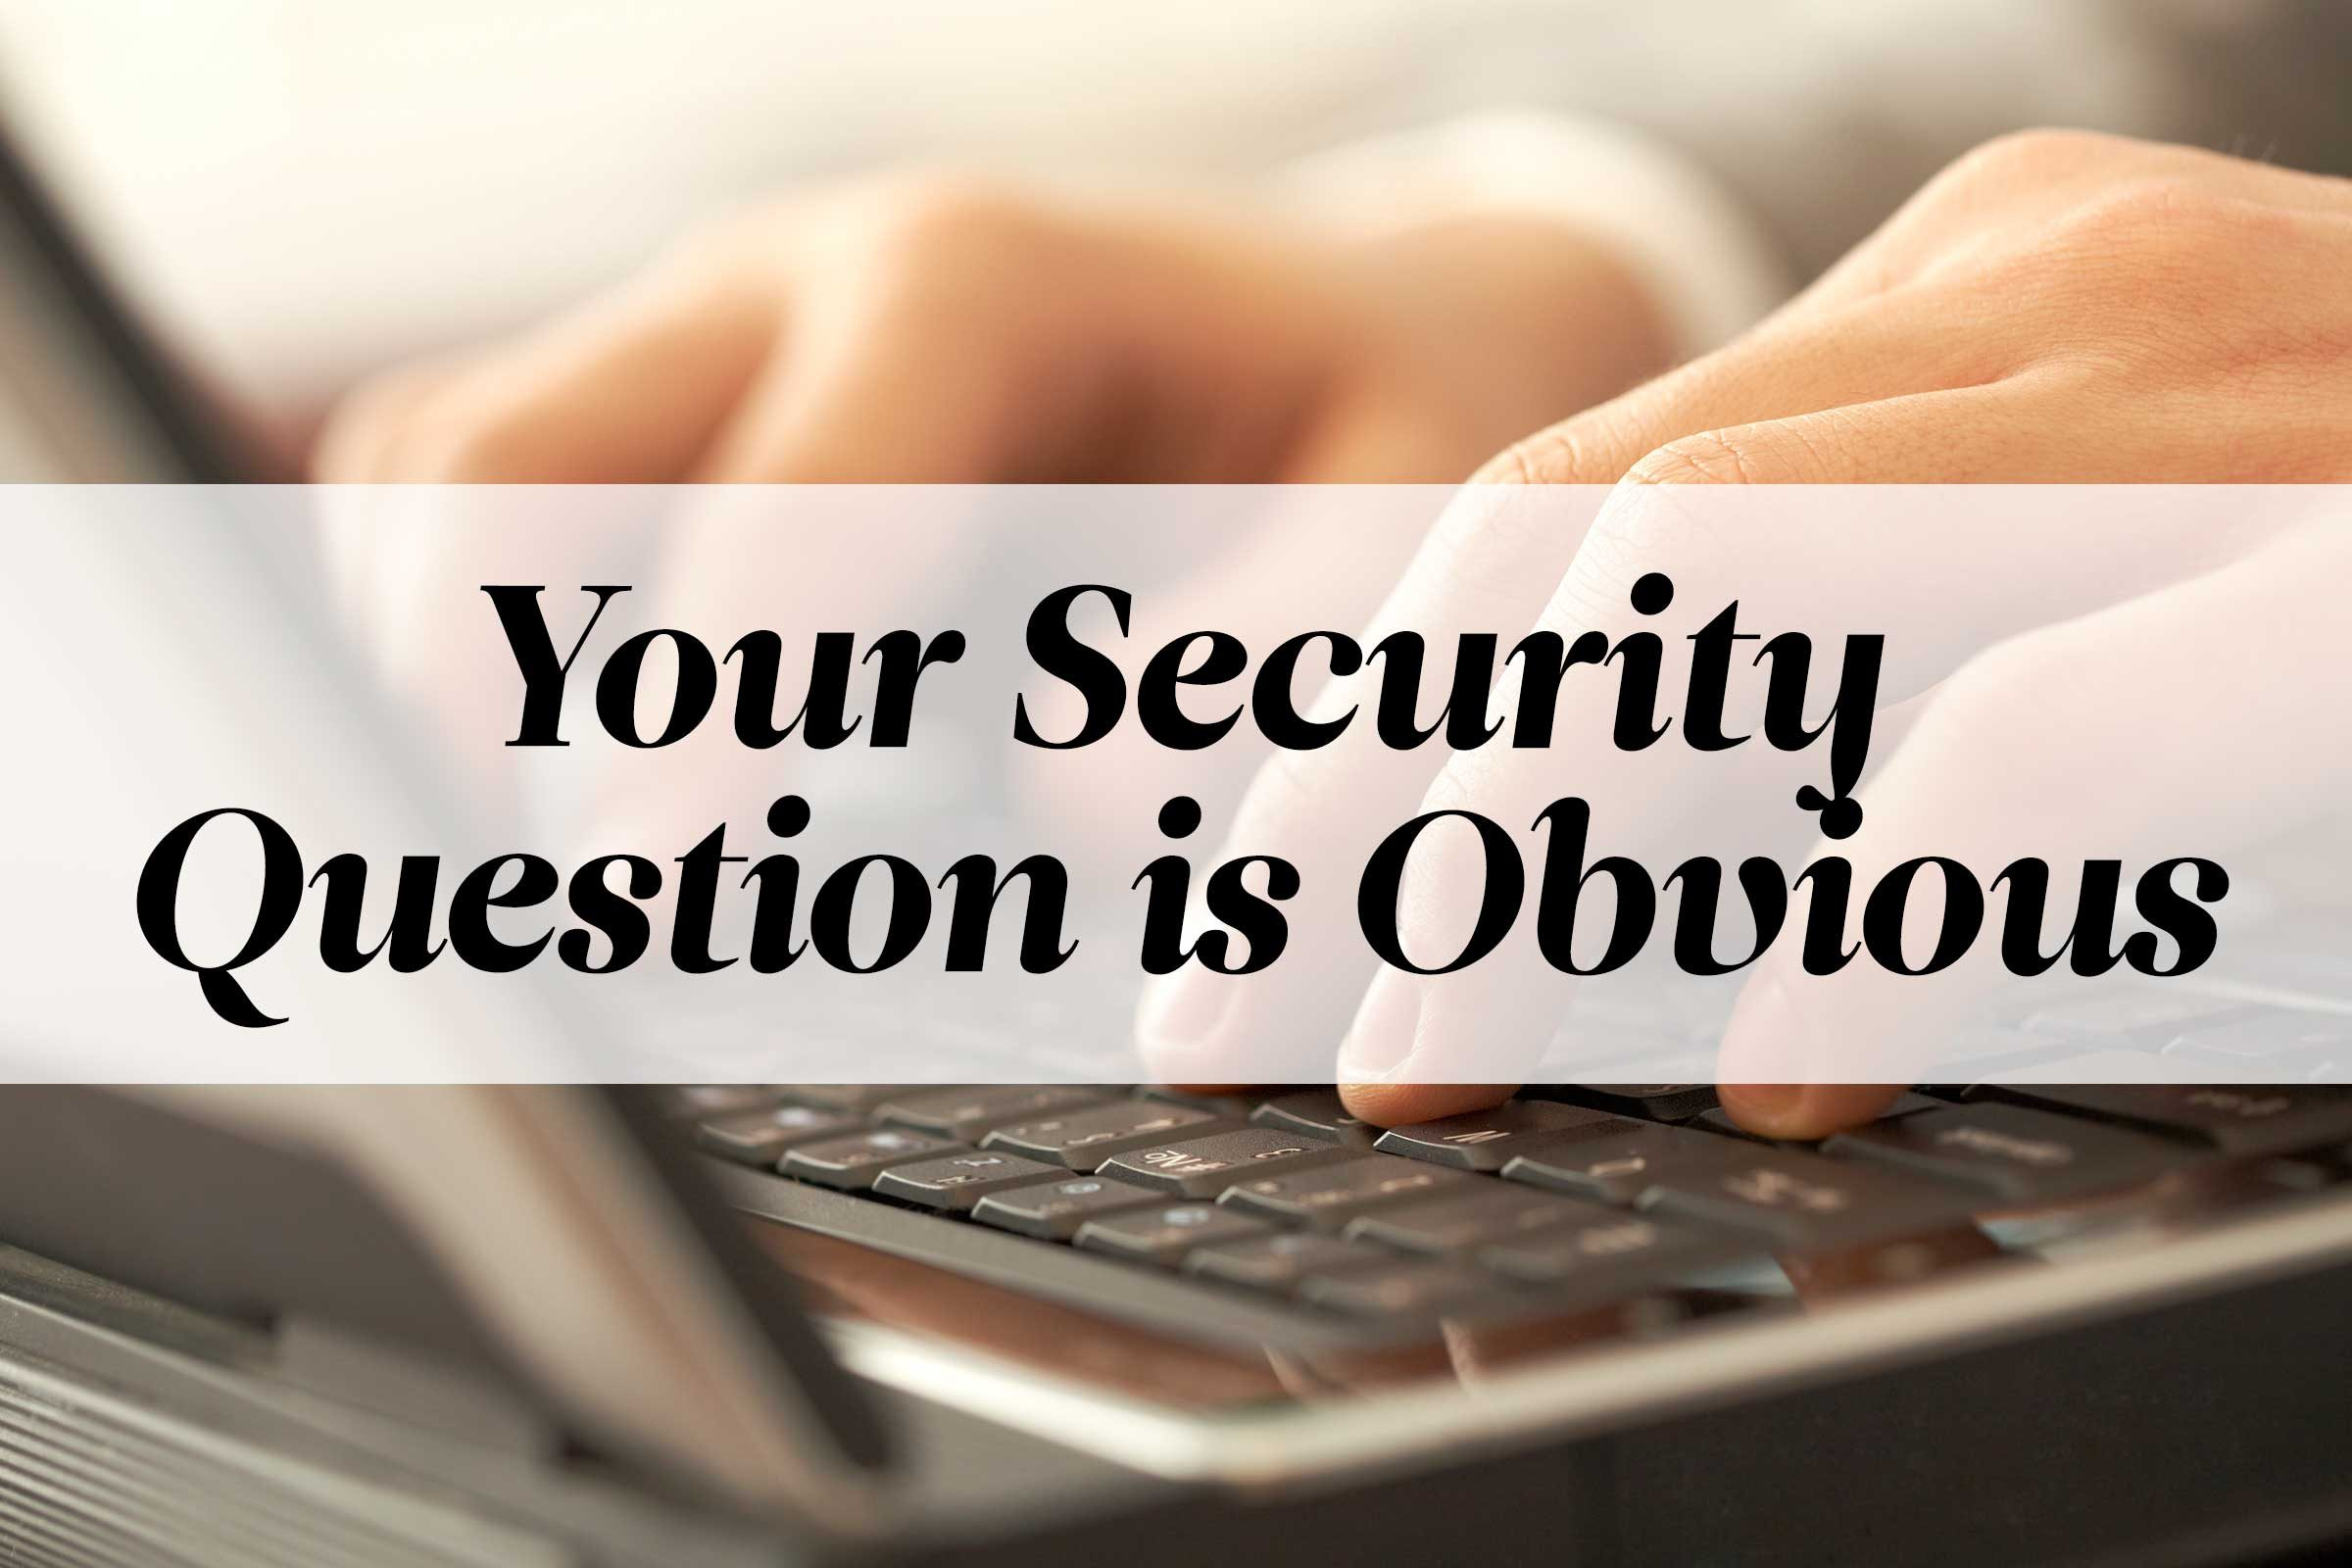 Your Security Question is Obvious